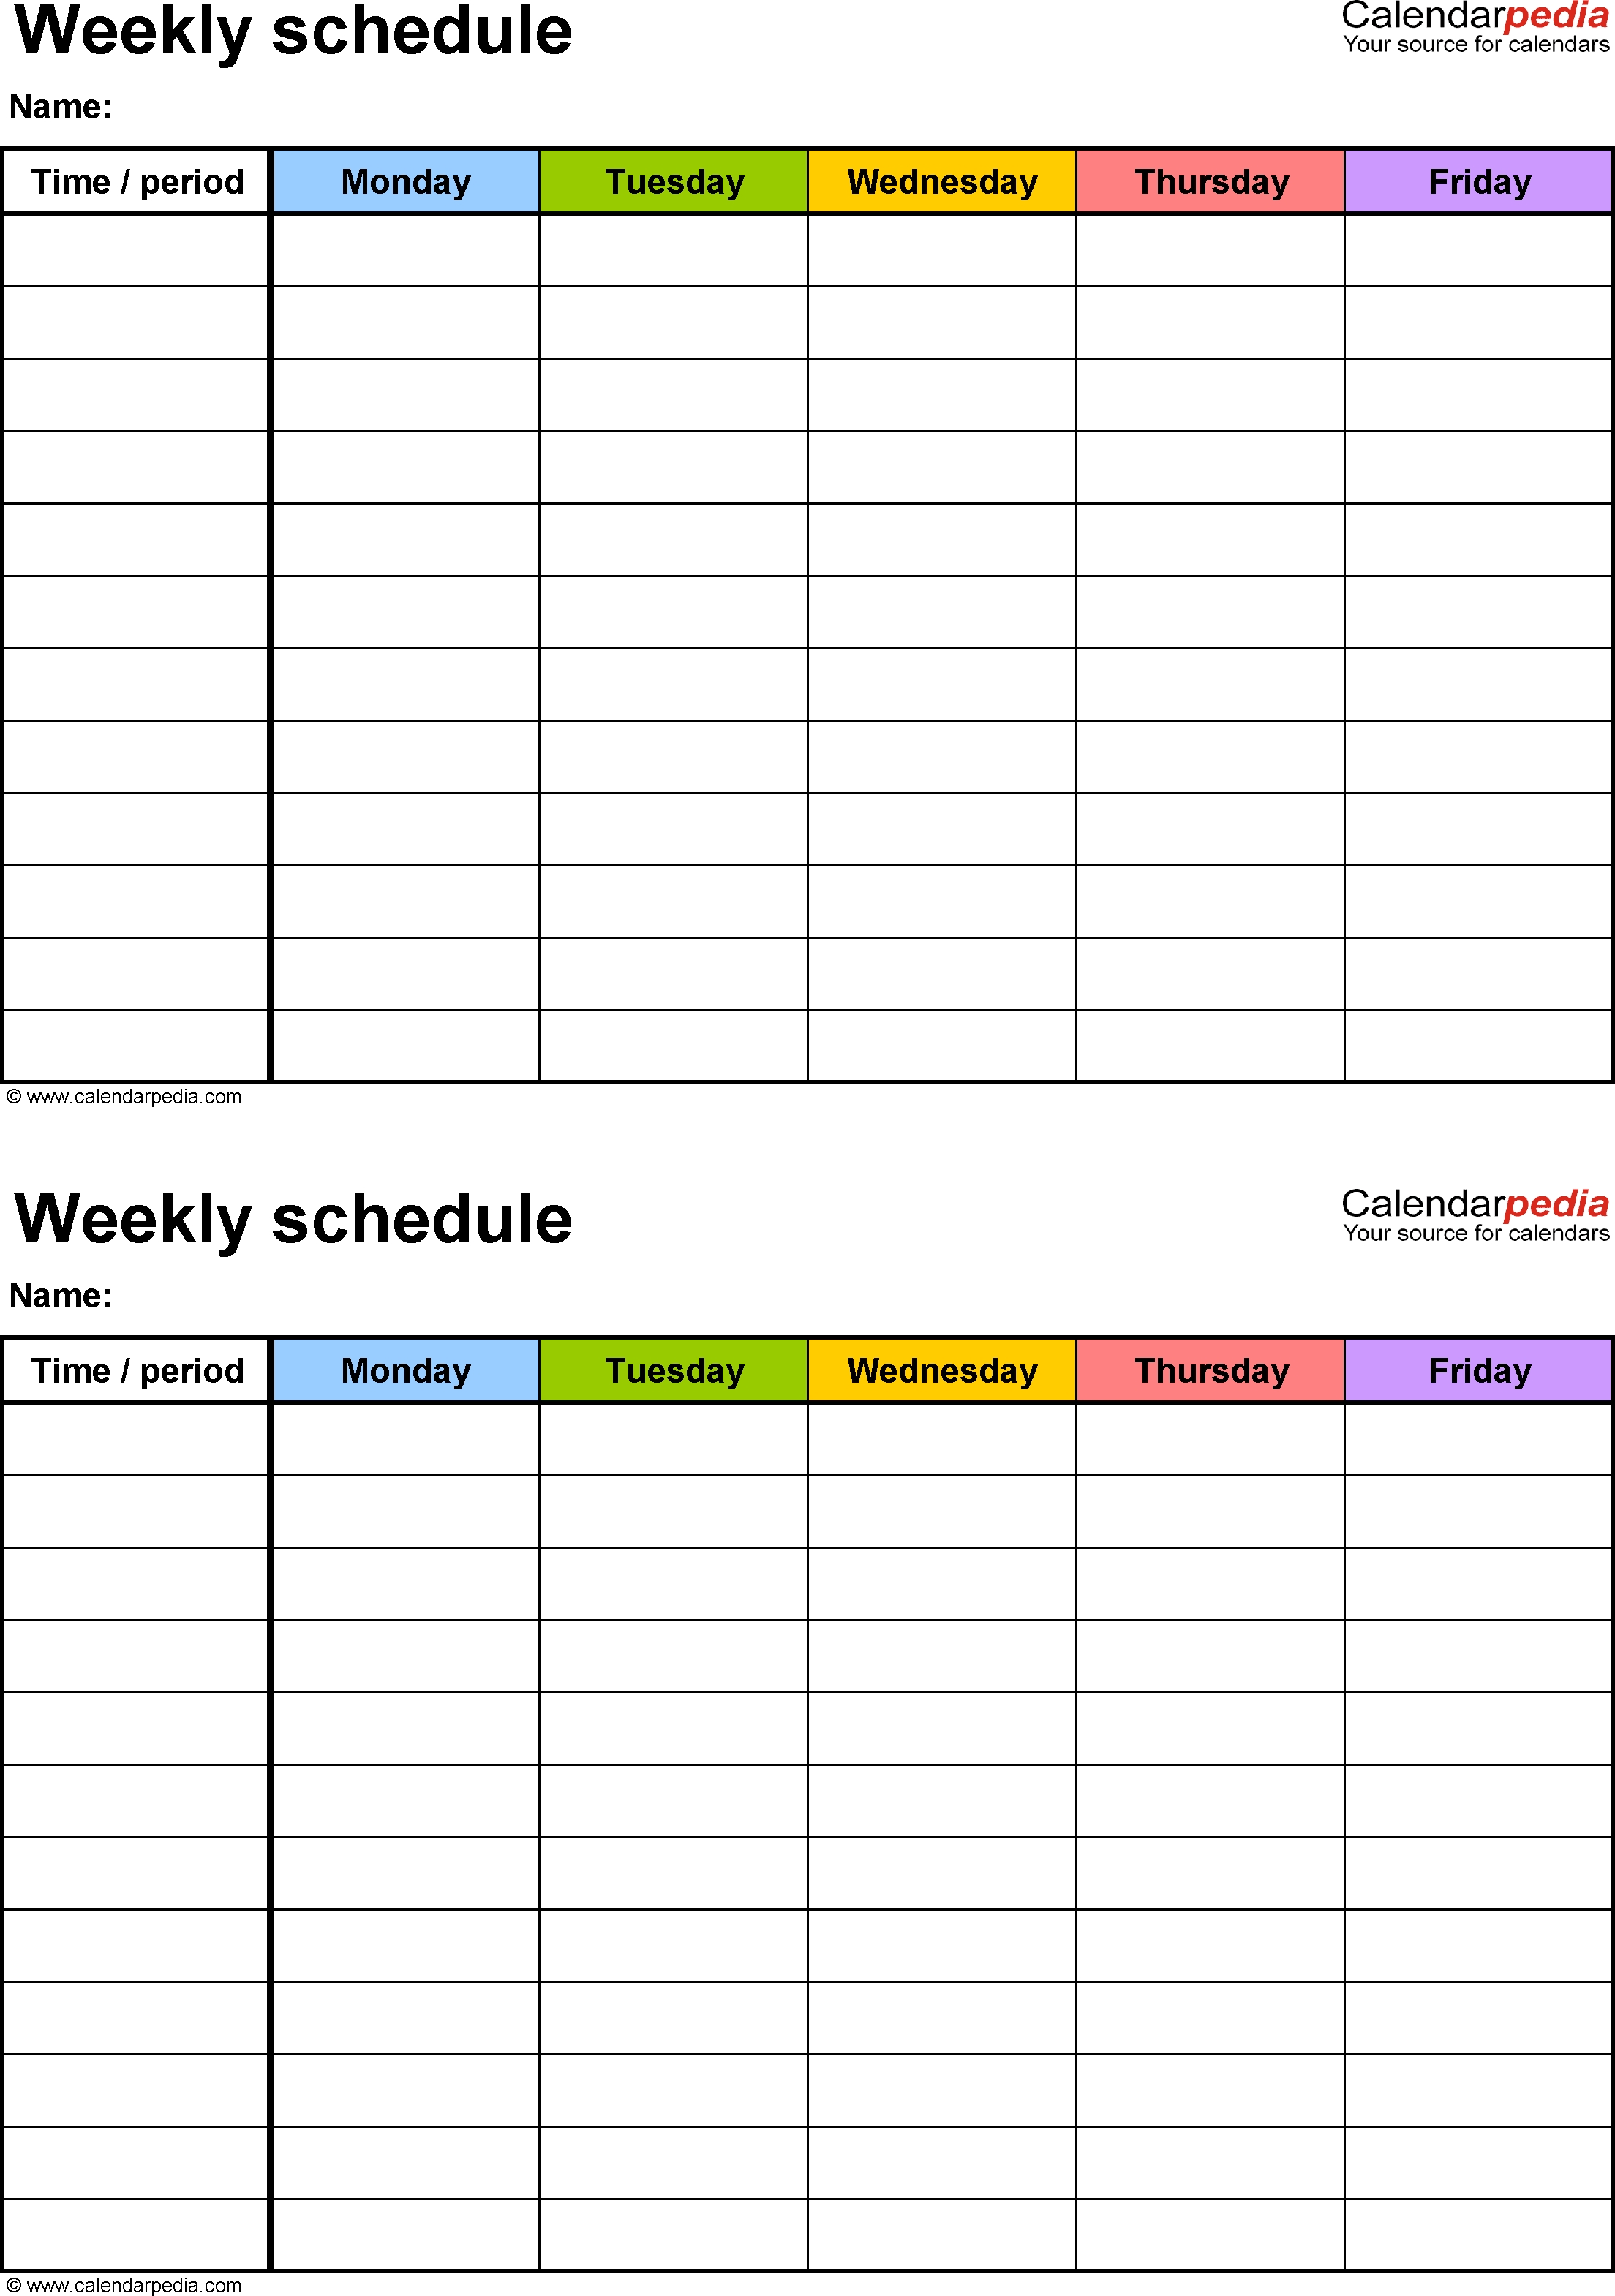 Day Calendar Template Free Weekly Schedule Templates For Word intended for Blank 7-Day Calendar With Time